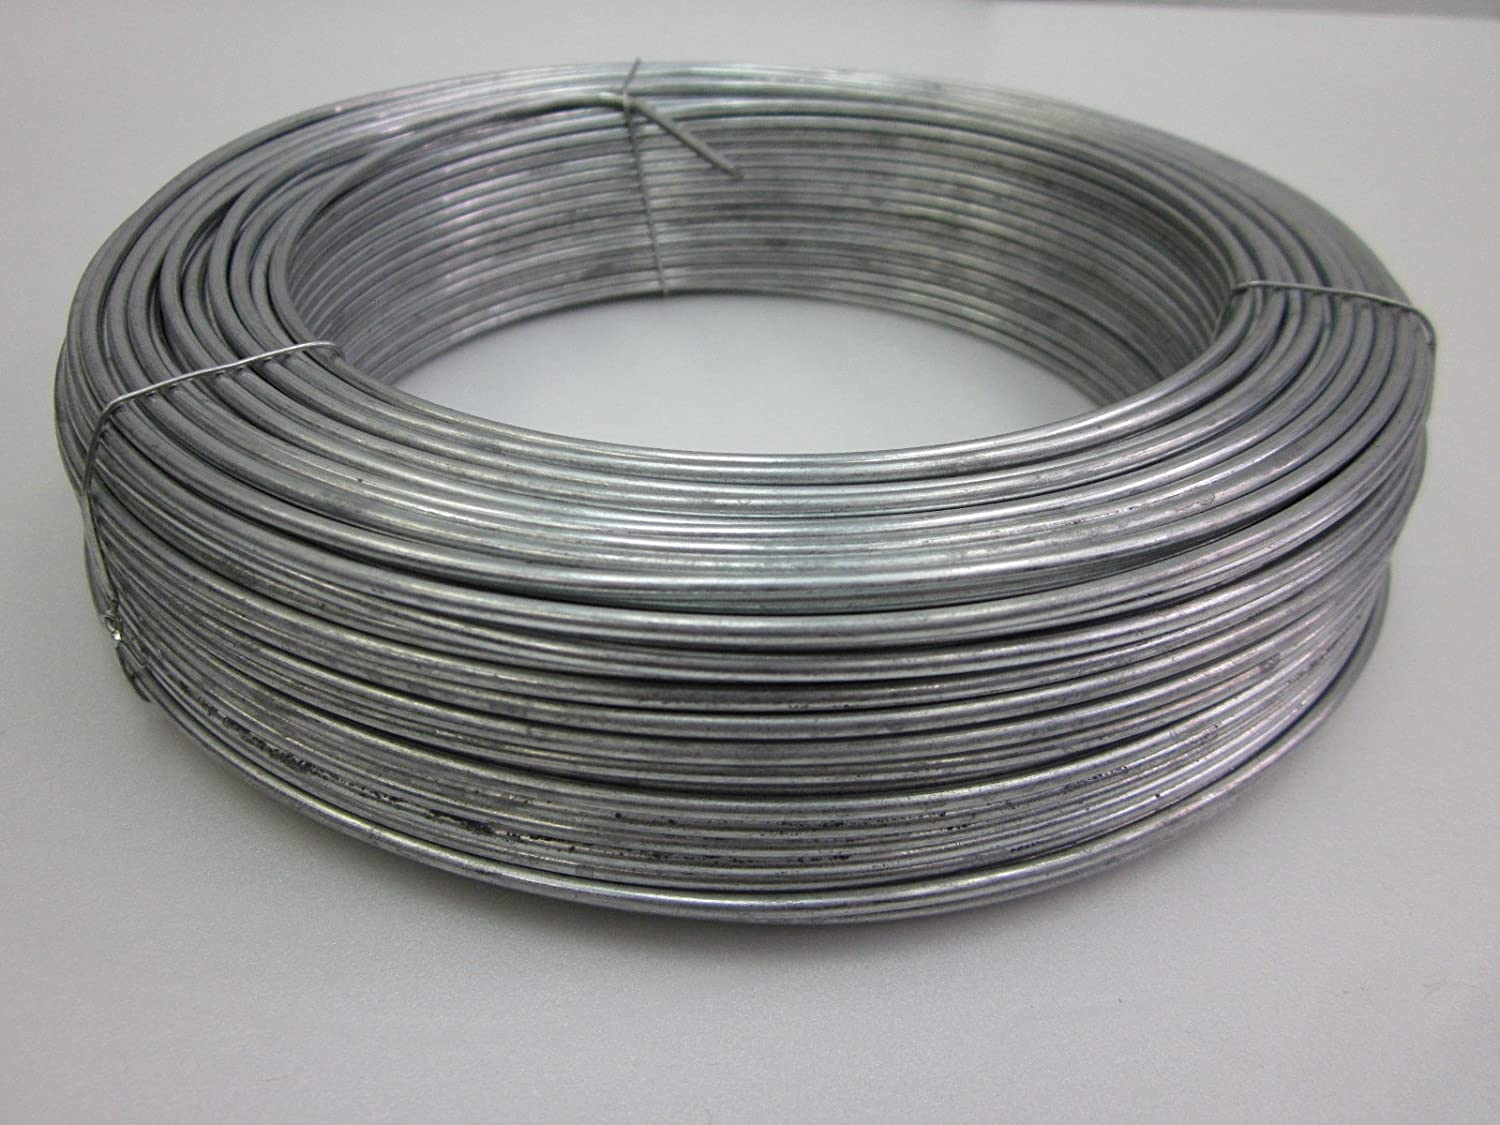 Amazon.com: Tension Straining Wire for fencing, 100m x 2.5mm Wire (1 ...